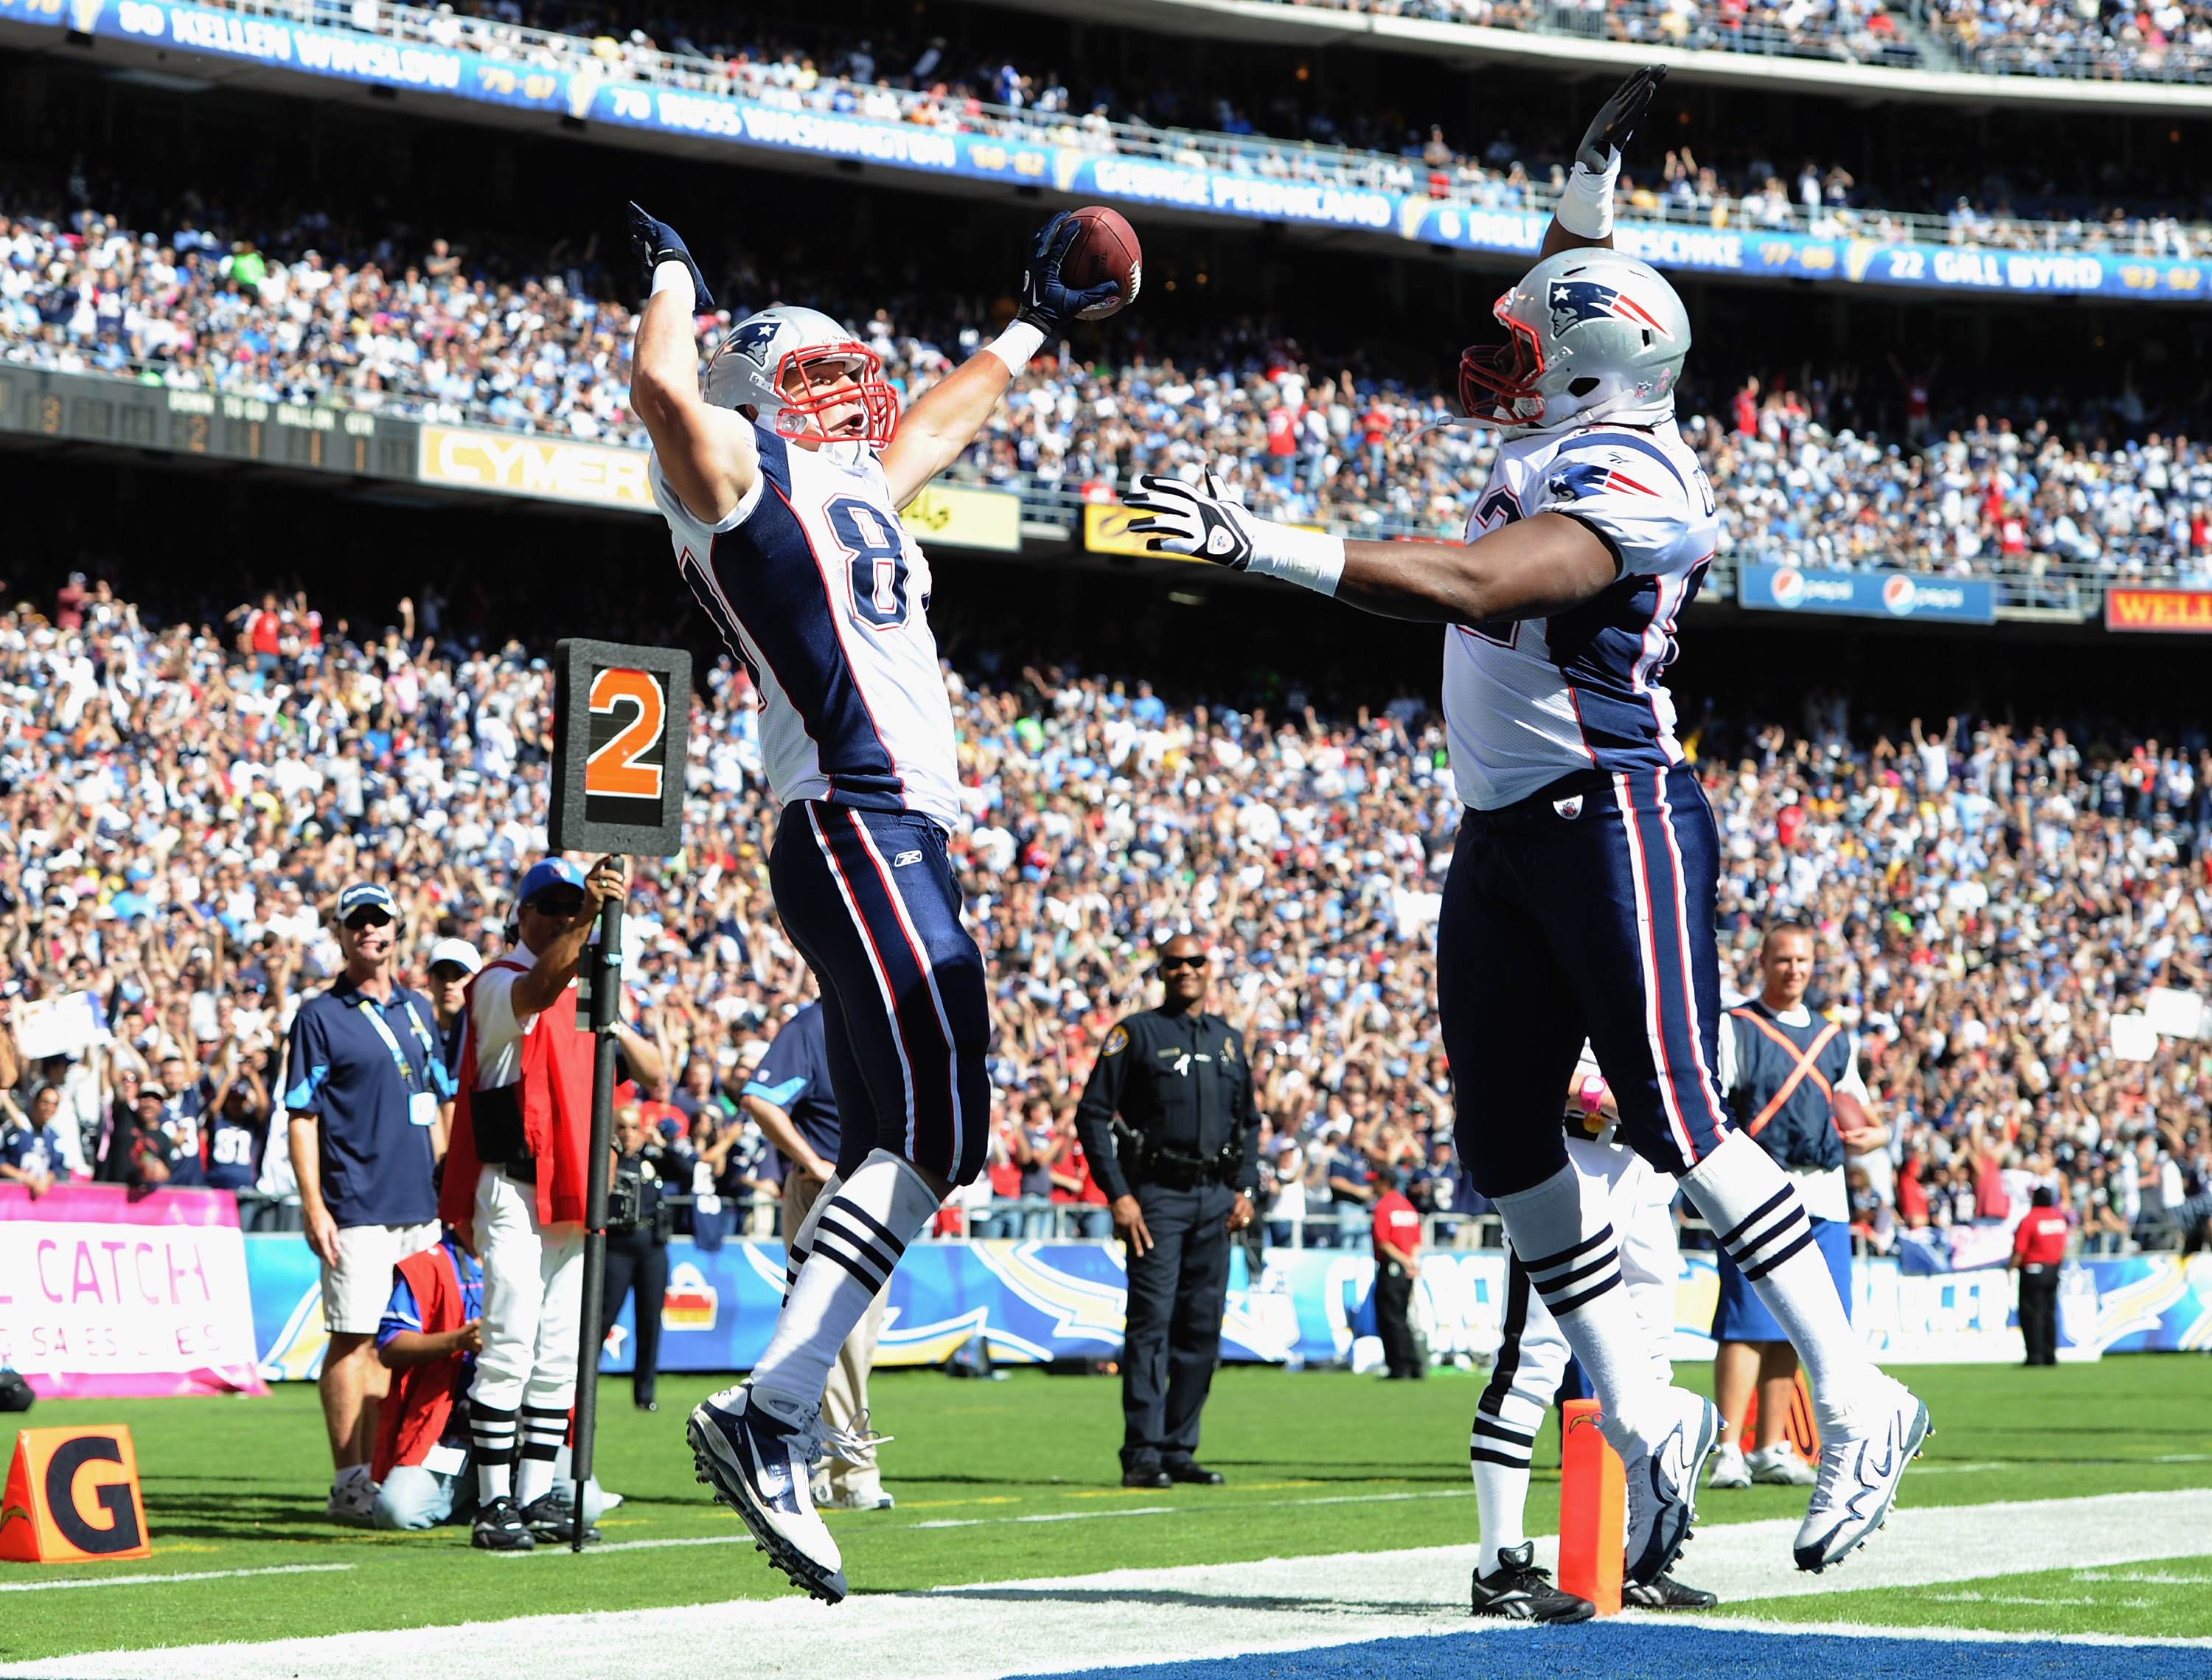 SAN DIEGO - OCTOBER 24:  Rob Gronkowski #87 of the New England Patriots celebrates his touchdown with Alge Crumpler #82 for a 7-3 lead over the San Diego Chargers during the first quarter at Qualcomm Stadium on October 24, 2010 in San Diego, California.